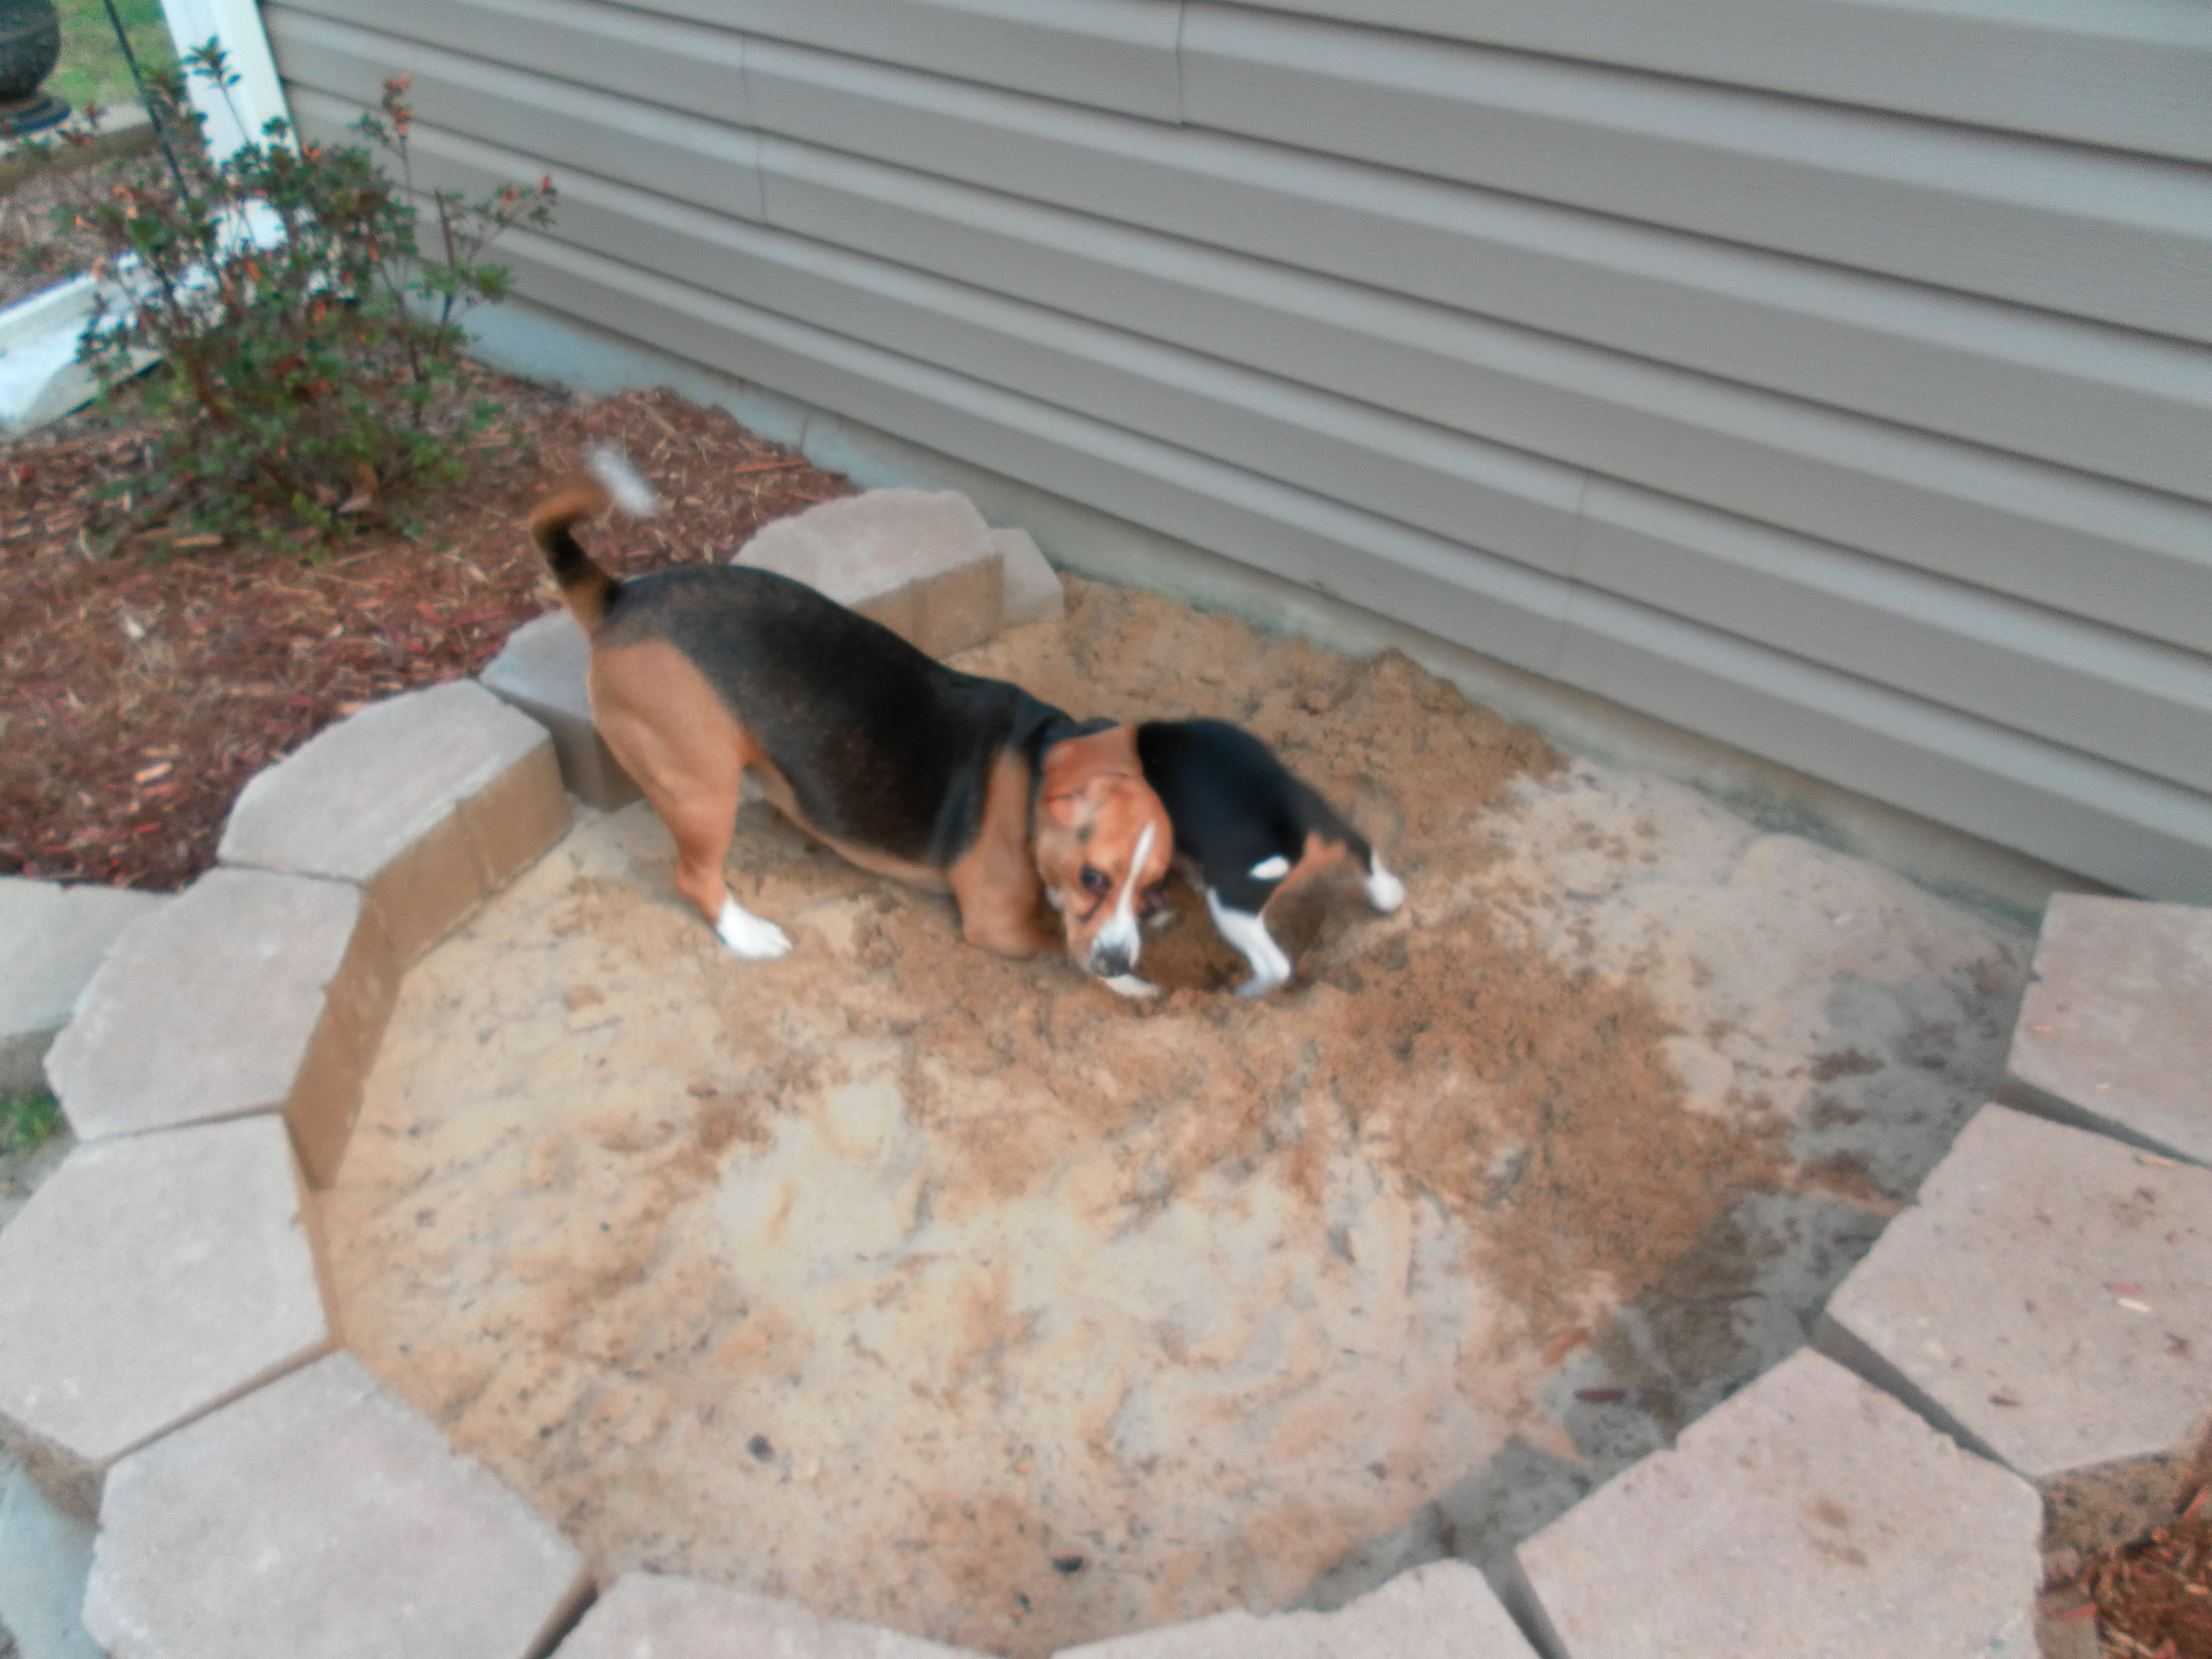 Have Dogs That Dig Build Them Their Own Sandbox Safely Let Them with Backyard Ideas For Dogs That Dig